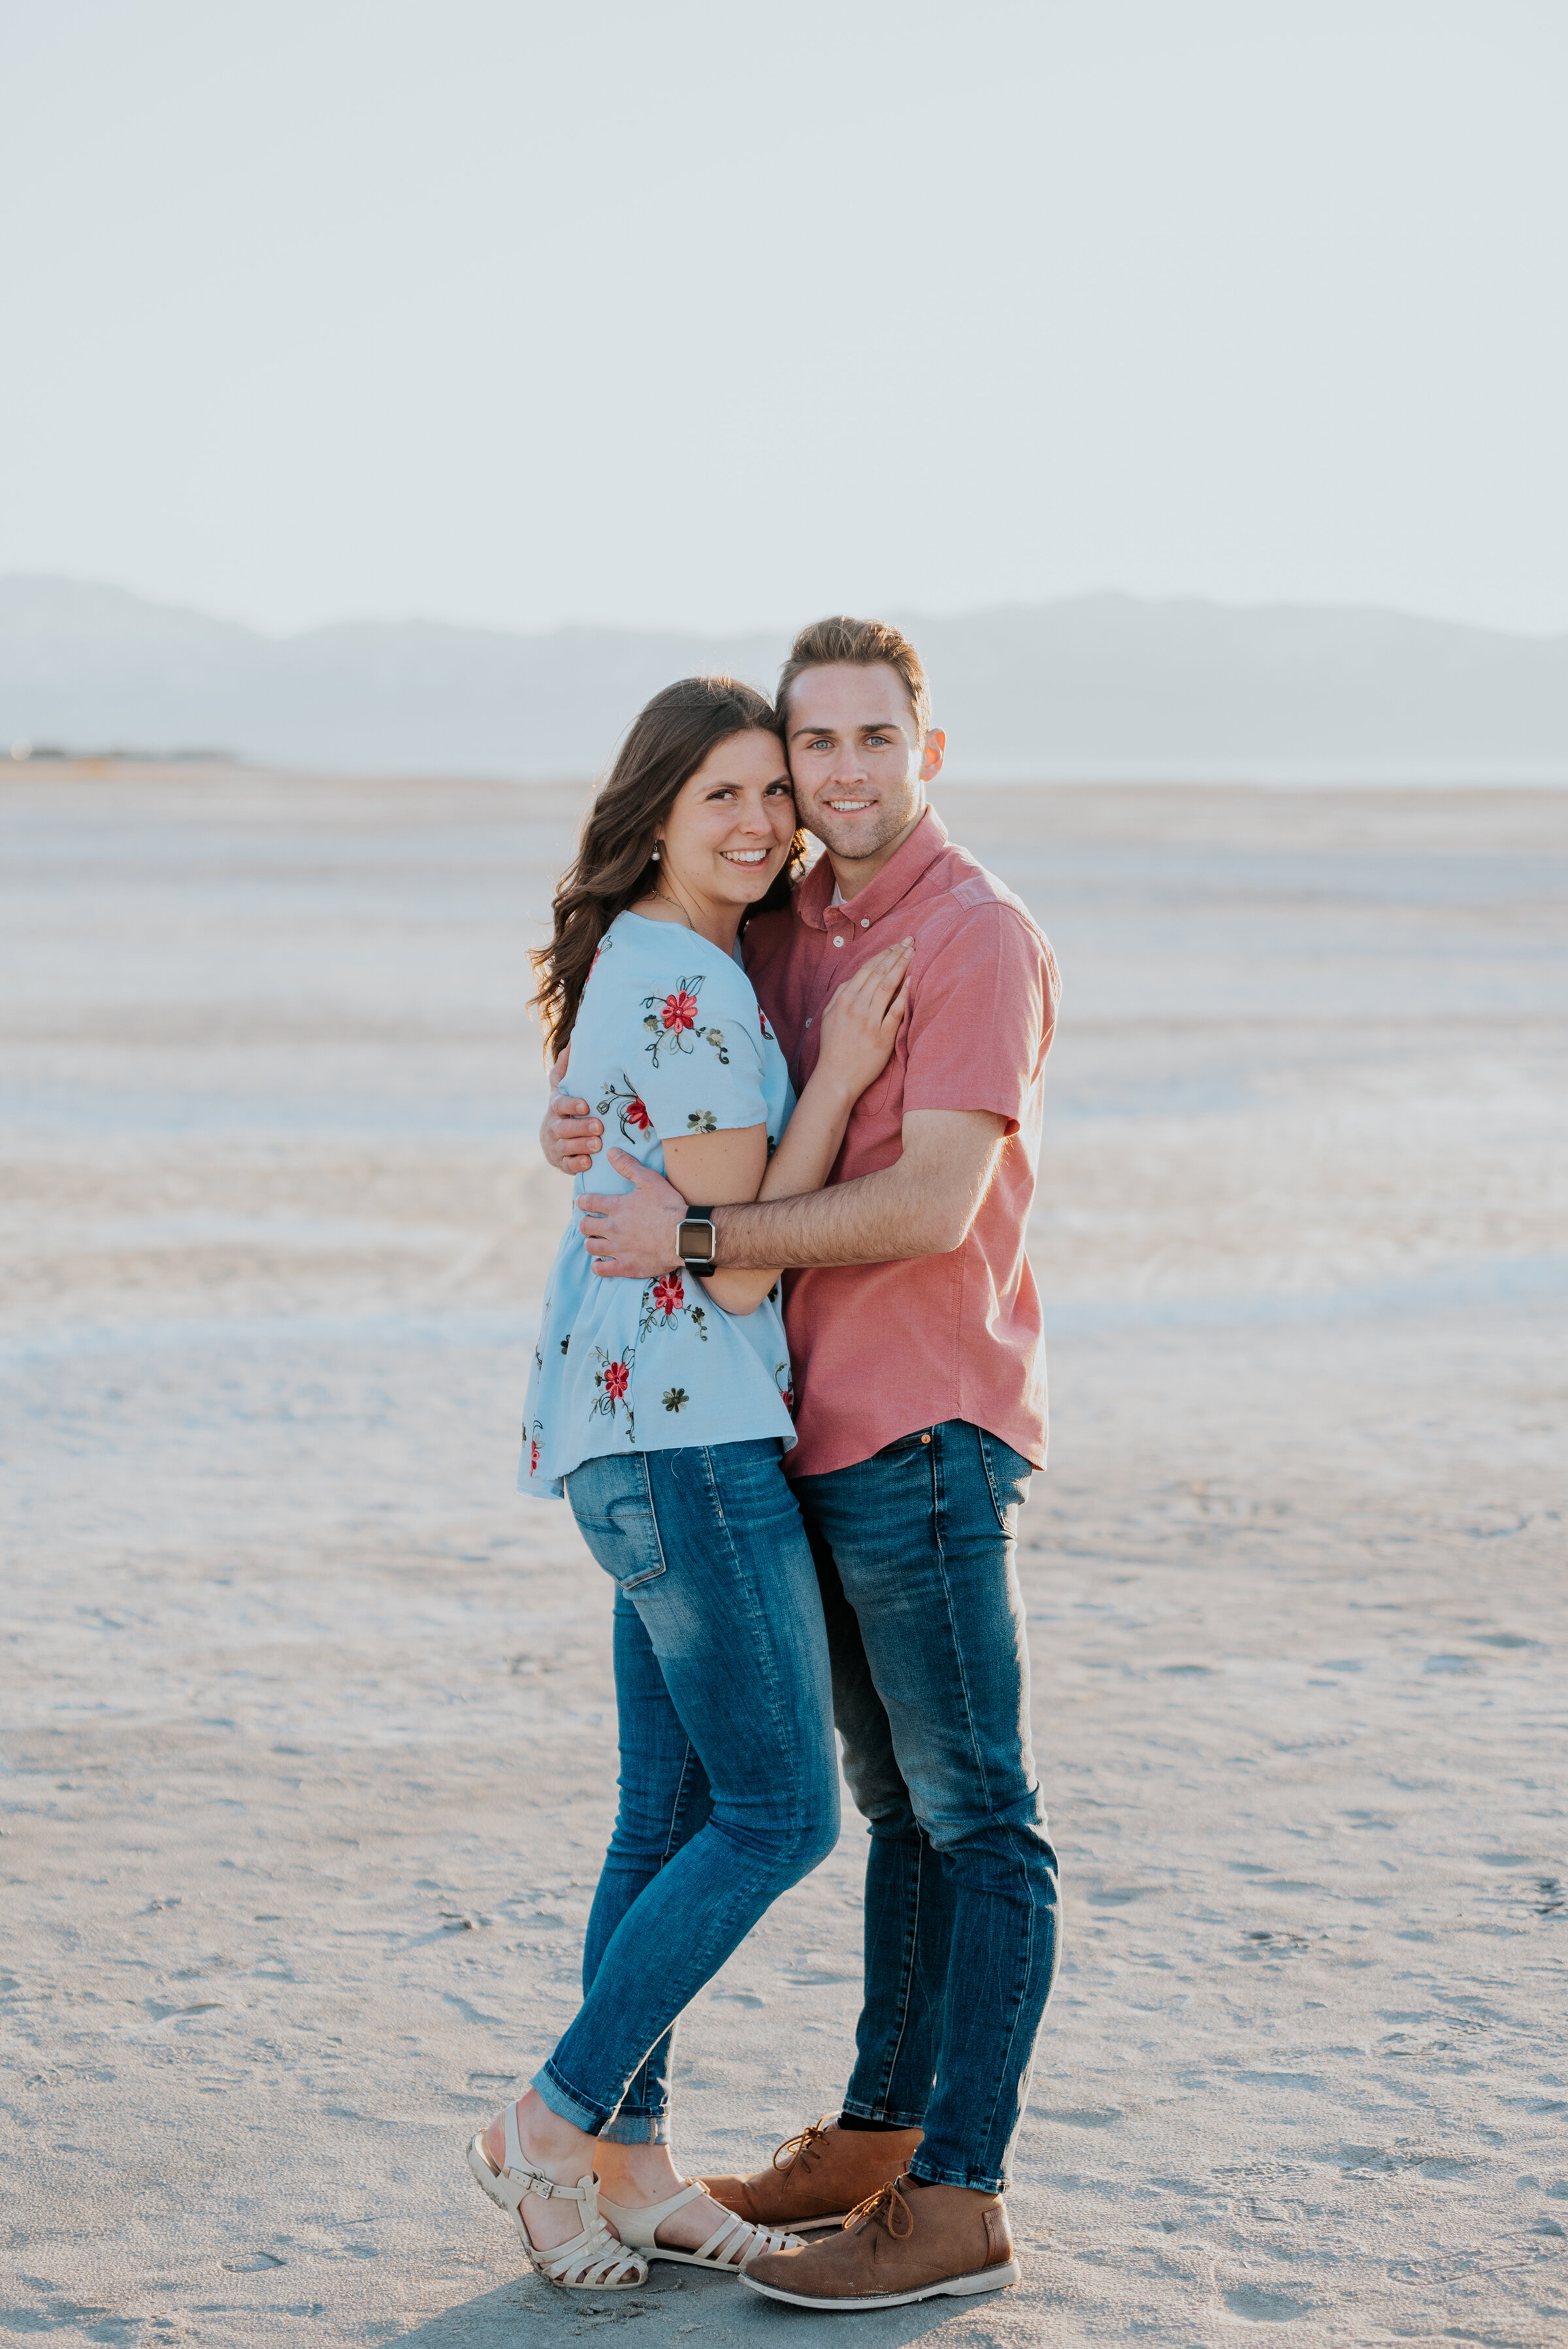 Couple looks across the salt flats in magna utah during their engagement photoshoot with Kristi Alyse Photography. Dry lake bed aesthetic magna utah photo locations outdoor nature engagement inspiration teal and coral matching outfits #kristialysephotography #tealandcoral #engagementphotoshoot #engagements #photoinspo #saltflats #utahphotography #outdoorphotography #naturephotography #natureinspo